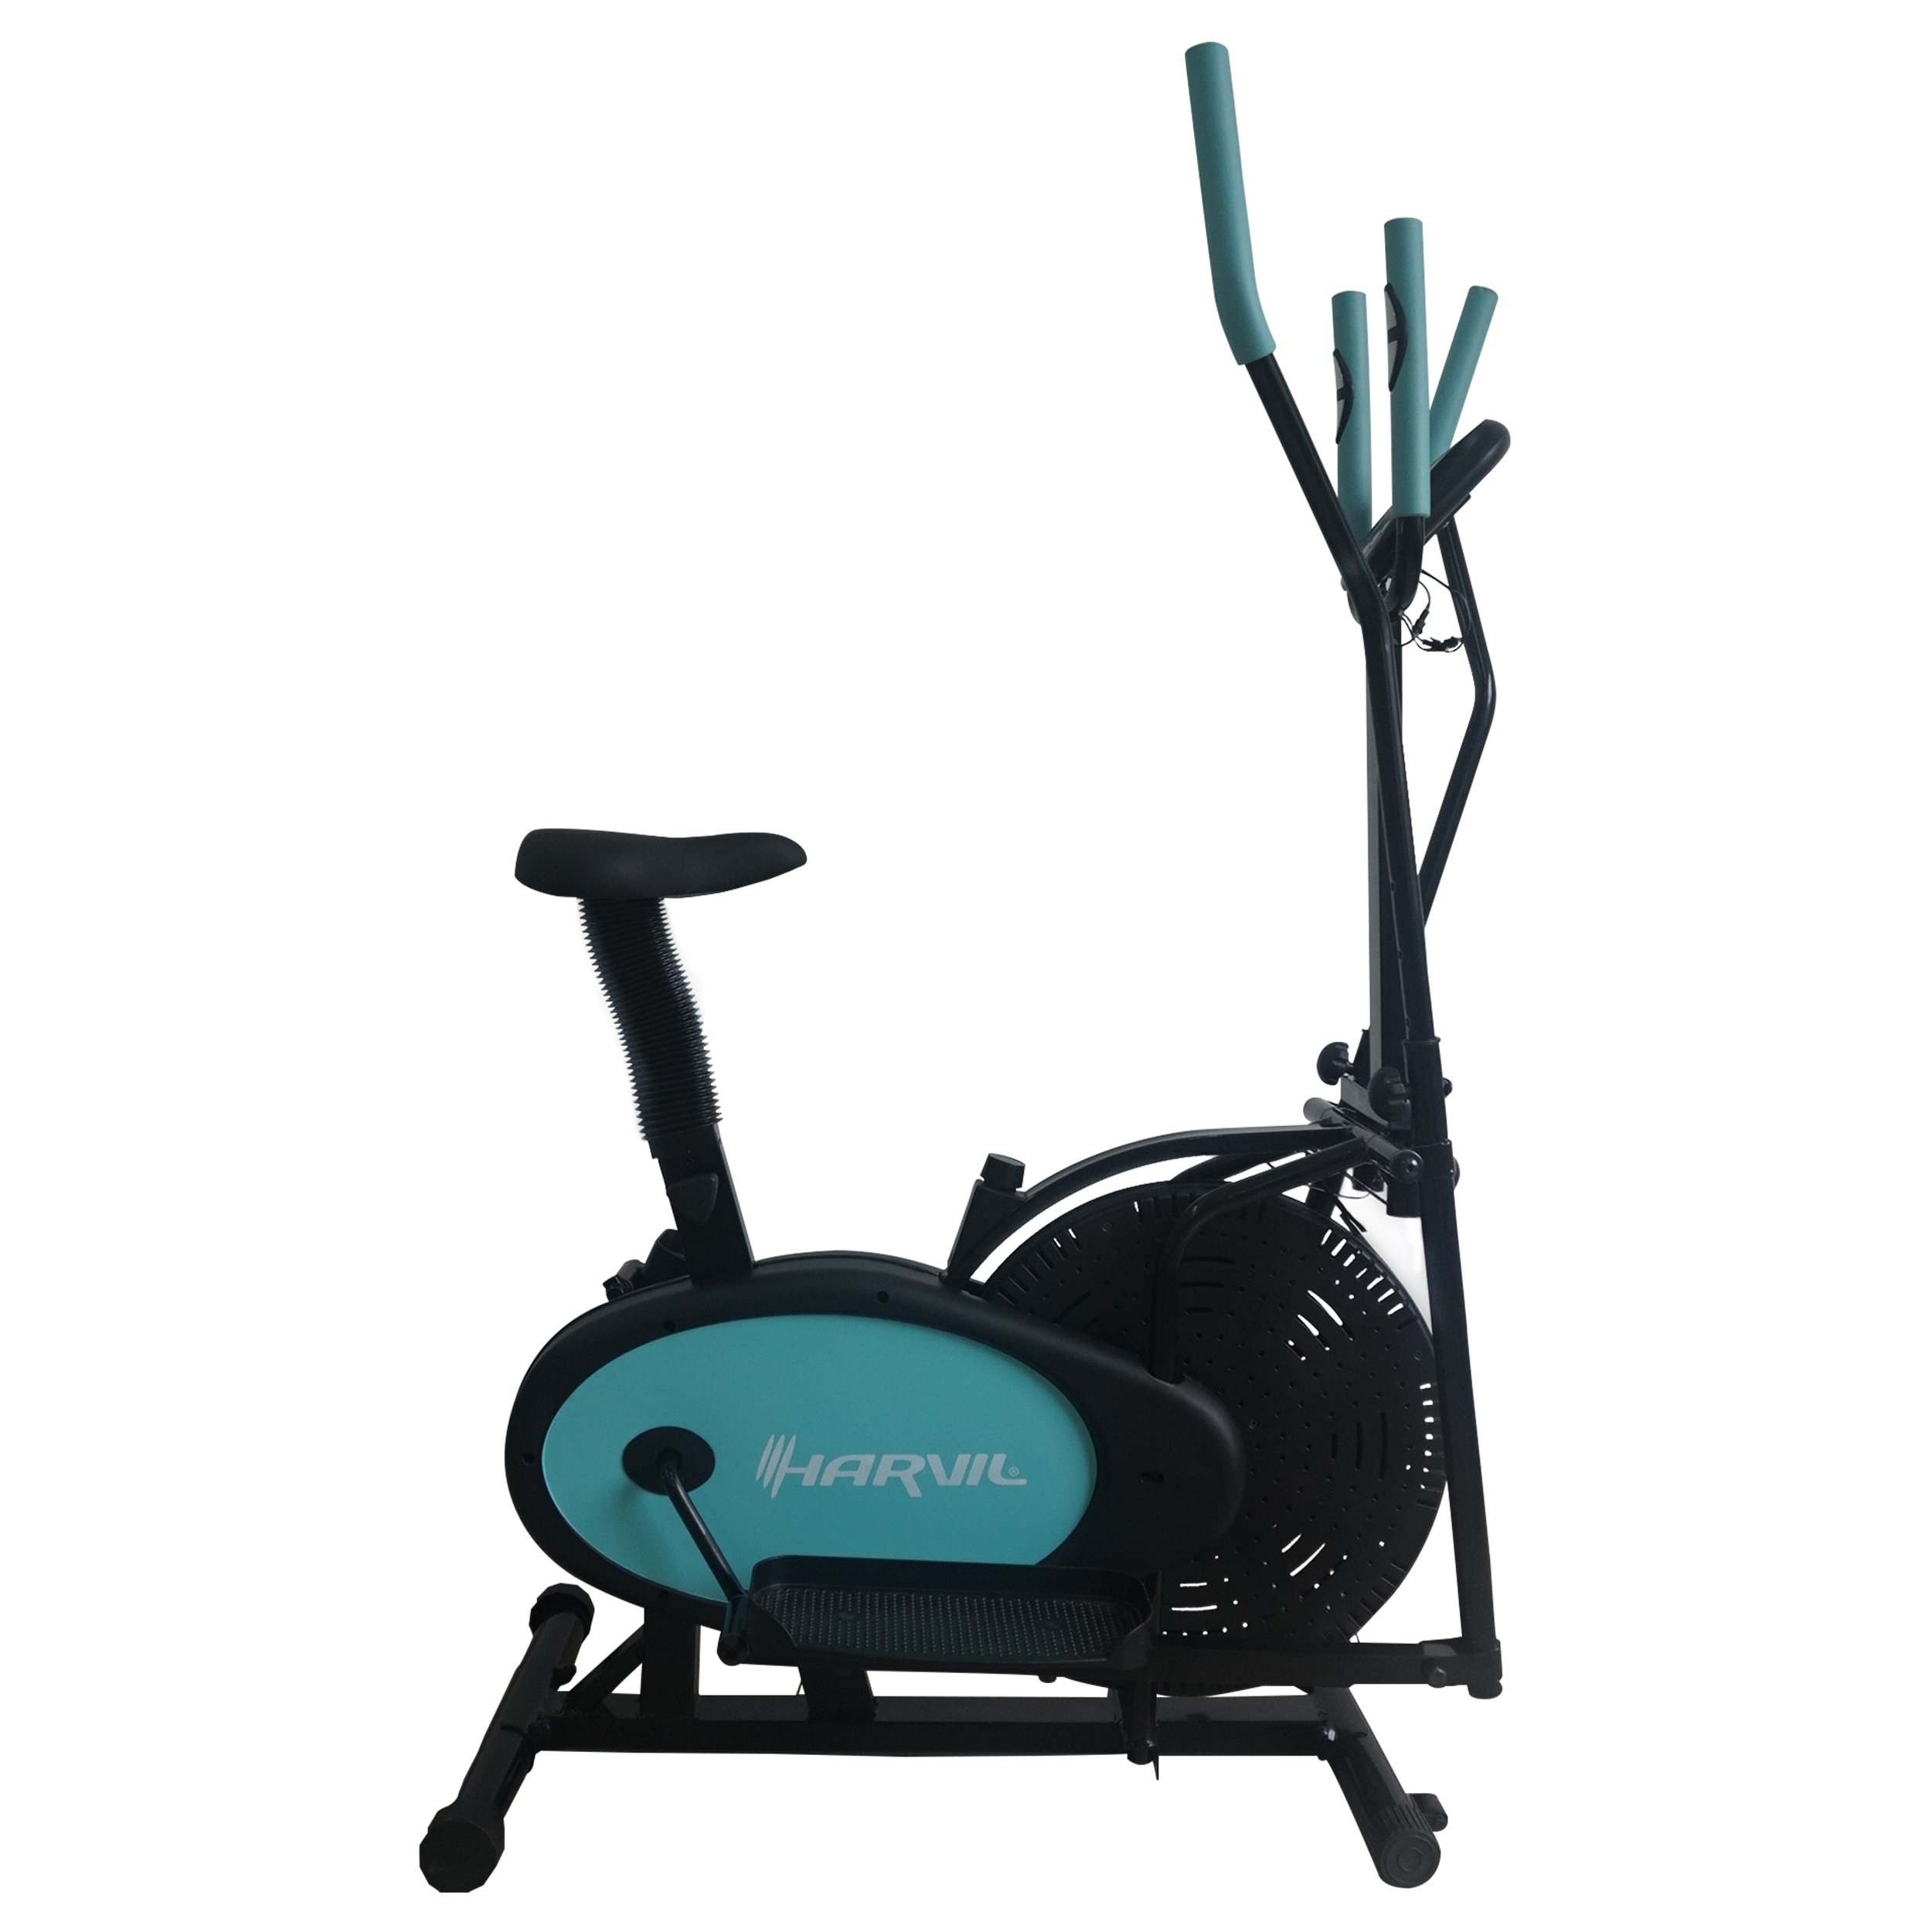 Harvil 2-in-1 Elliptical Machine Cross Trainer and Exercise Bike with Pulse Rate Sensor Grips and Tension Adjustment System by Harvil